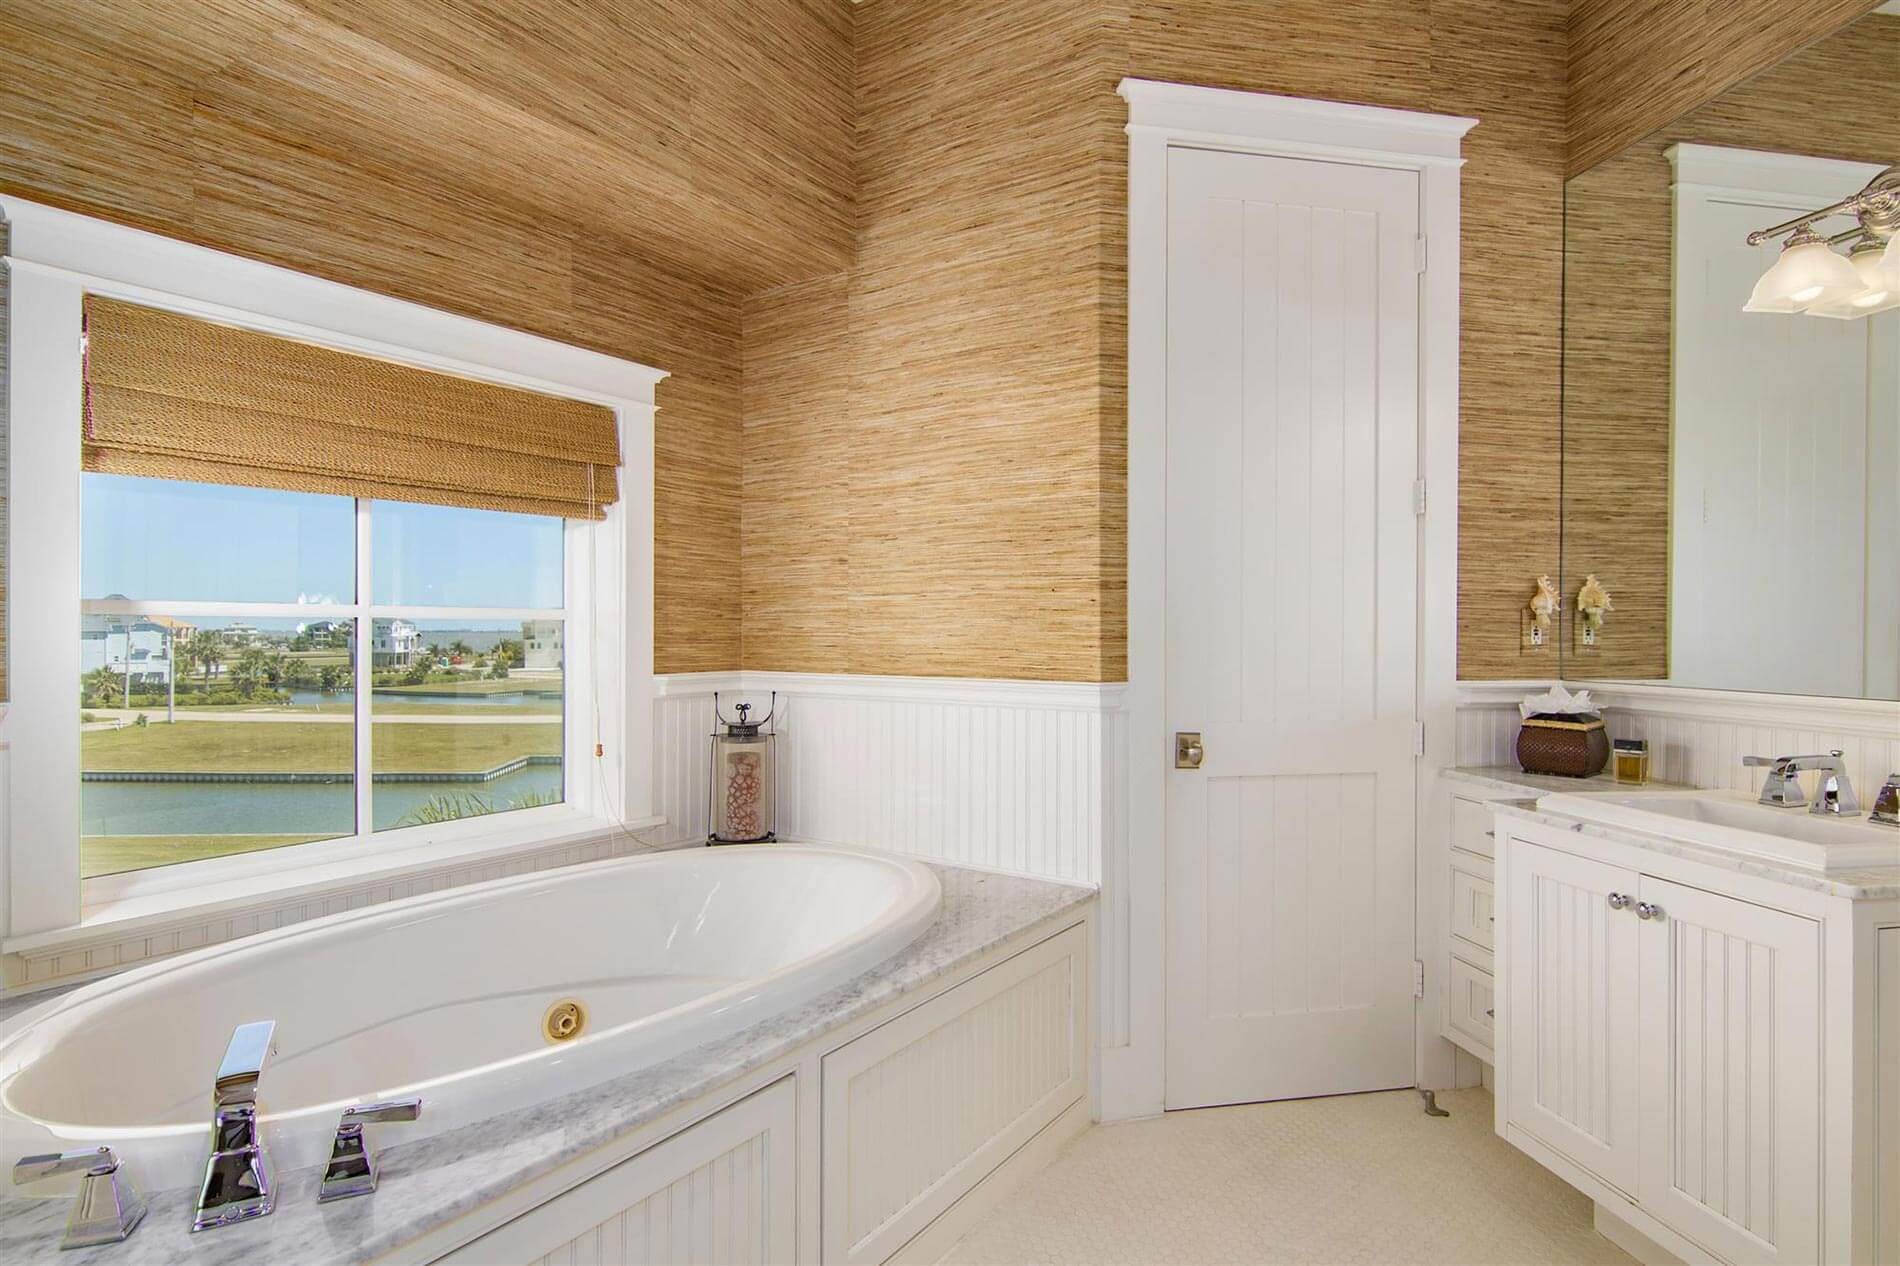 victorian bayhome bathrom with lake view